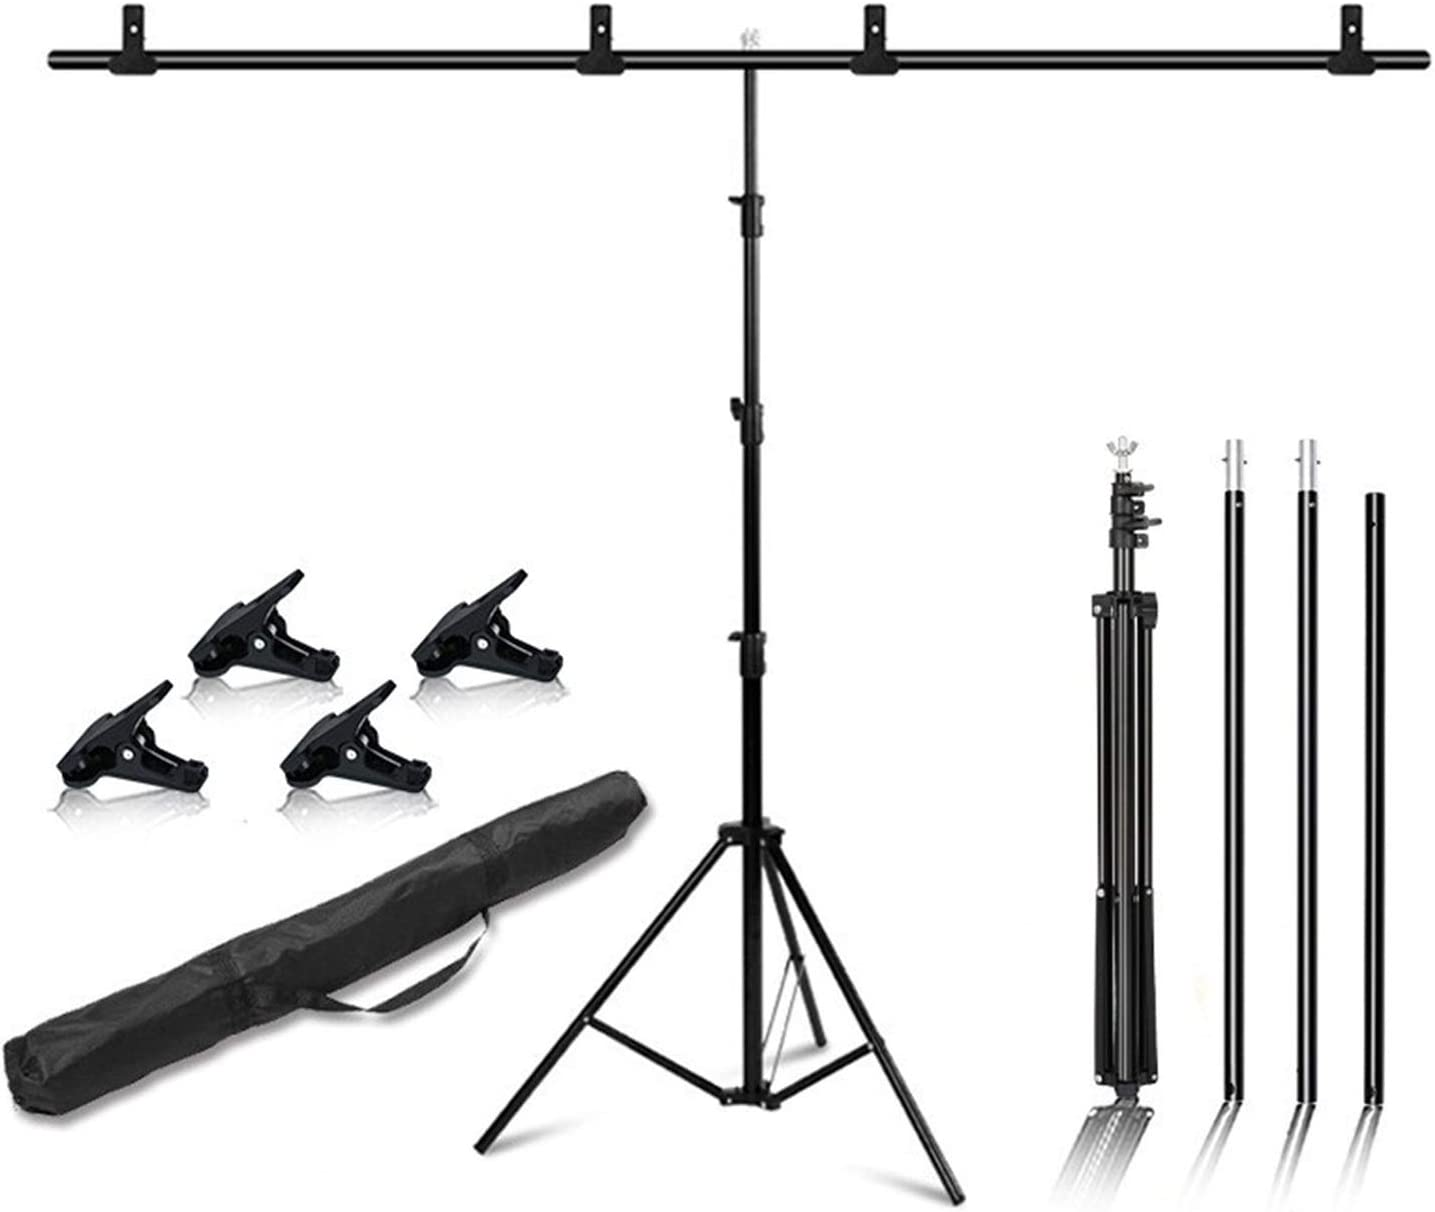 Zhice Photography T-Shape Background Omaha Mall Frame Backdrop Stands Factory outlet Photo